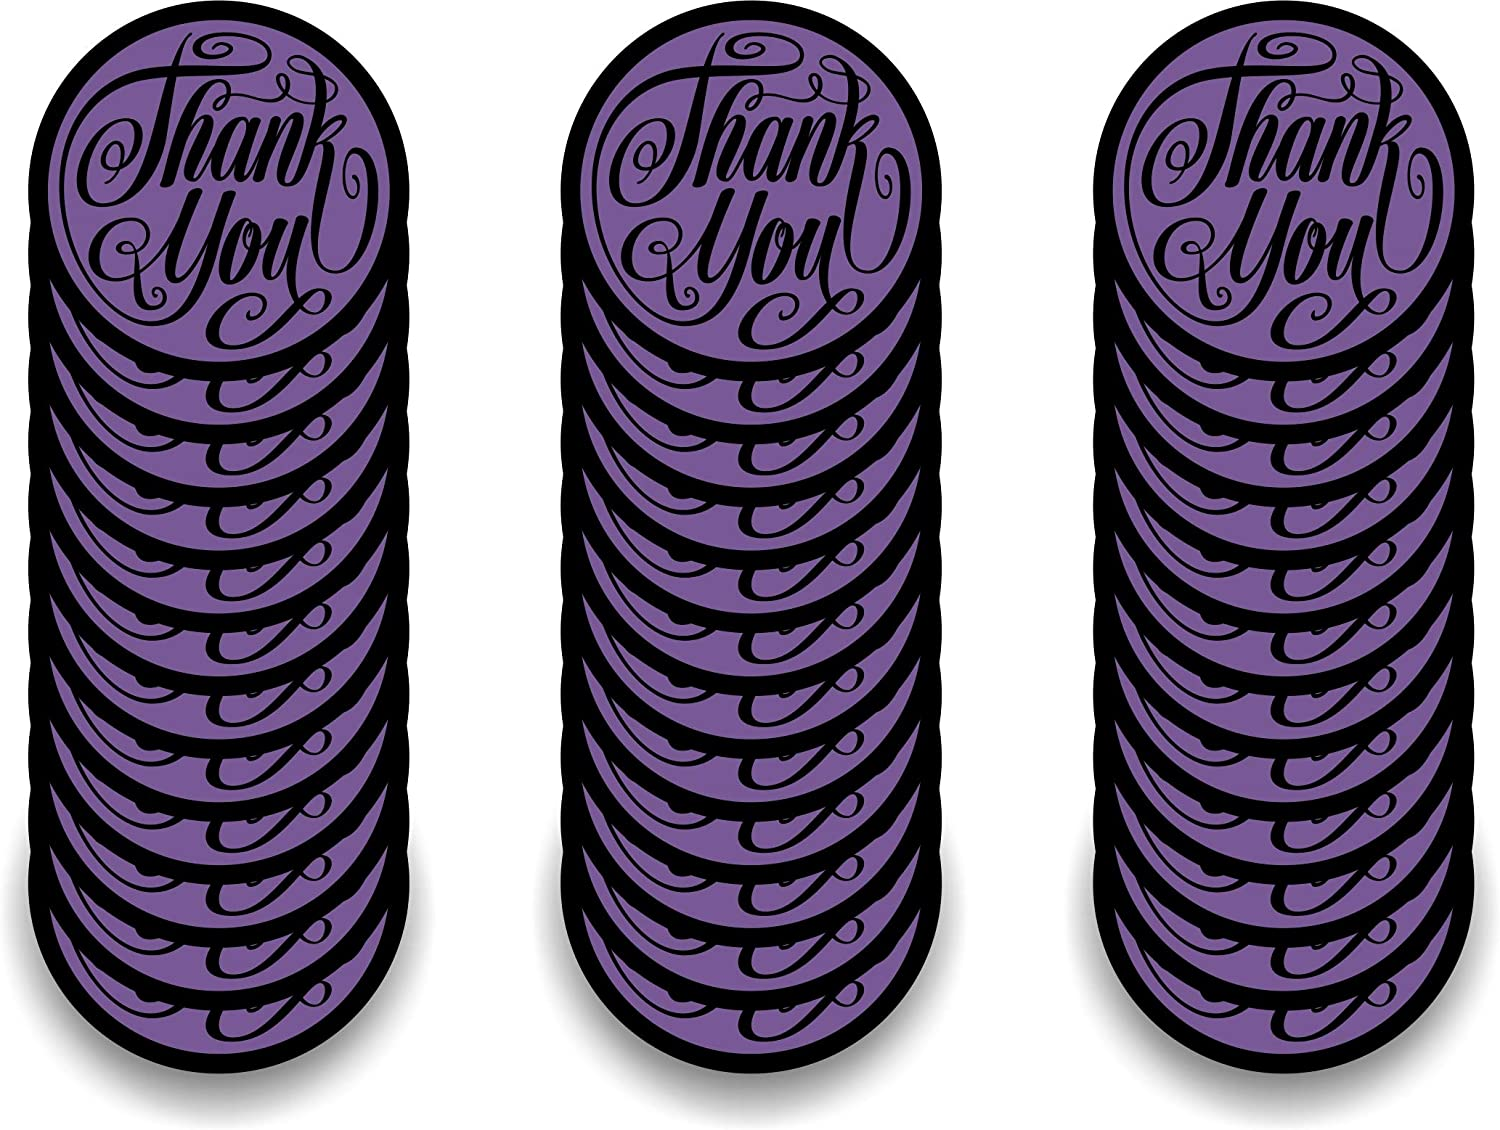 Purchase Appreciation Thank You Pieces SayThank You for Your Order with Package Insert Cards Cut in 1.85 wide Circles Aged Parchment